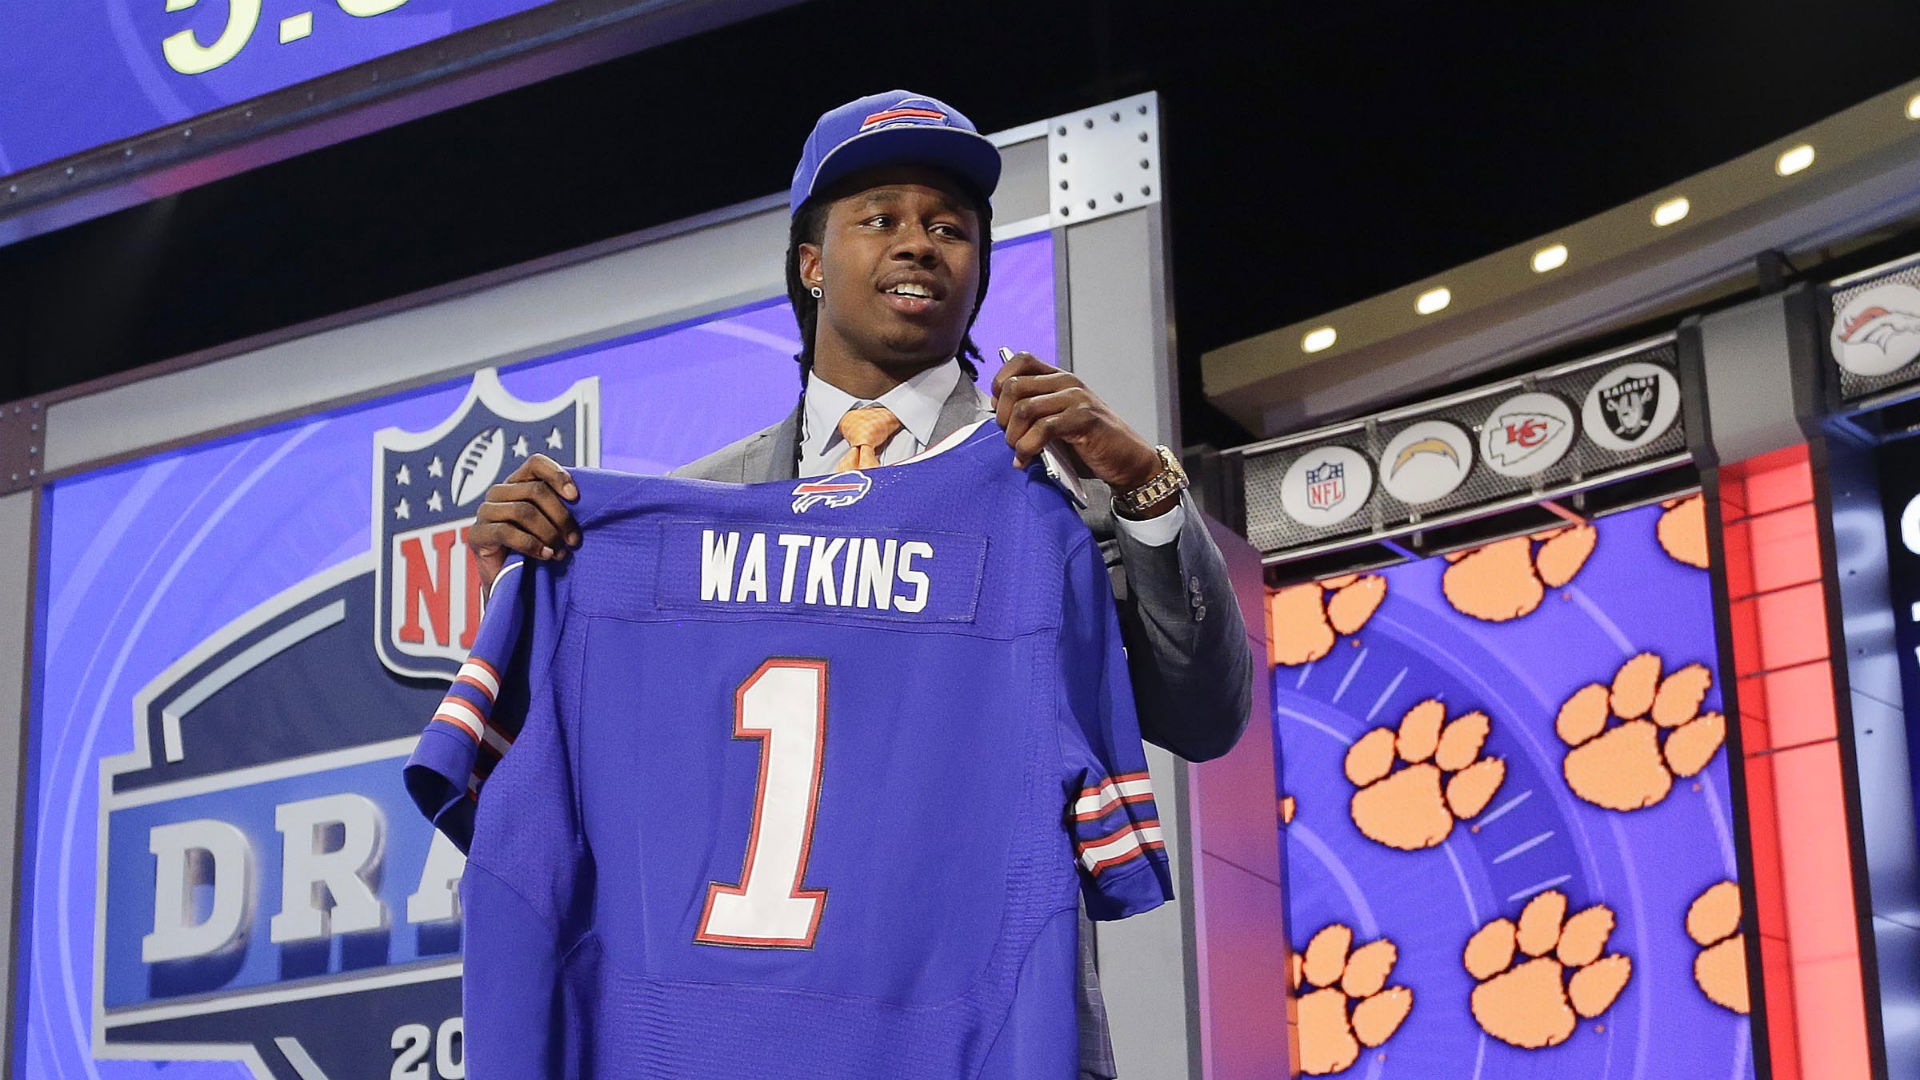 2014 Fantasy football rankings: Top NFL rookies